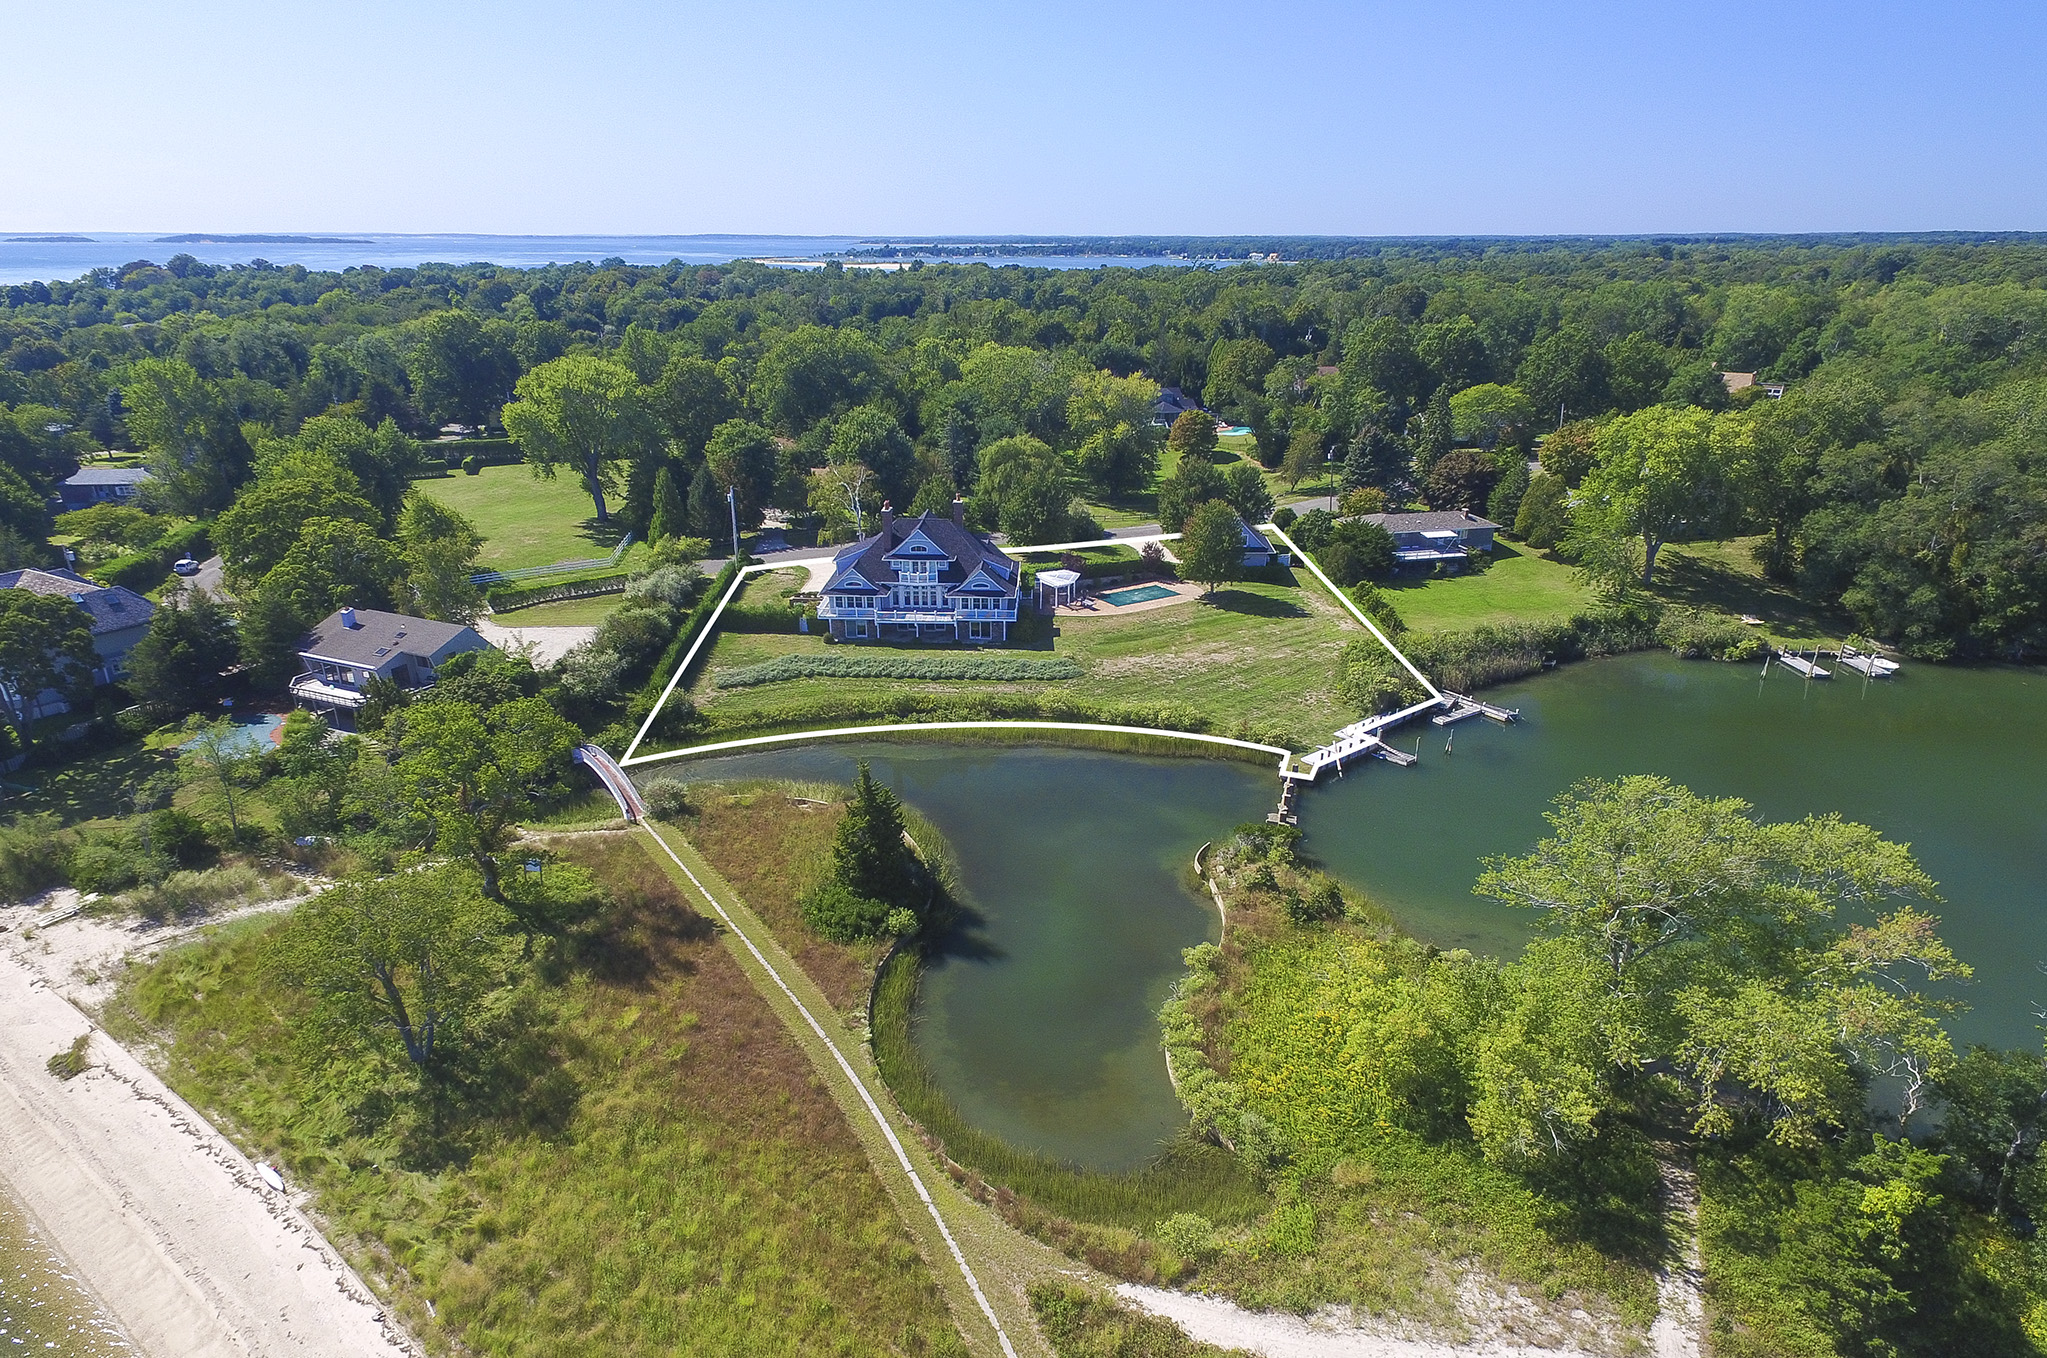 Single Family Home for Sale at Shelter Island Smith Cove Traditional With Dock And Pool 22 Merkel Lane, Shelter Island, New York